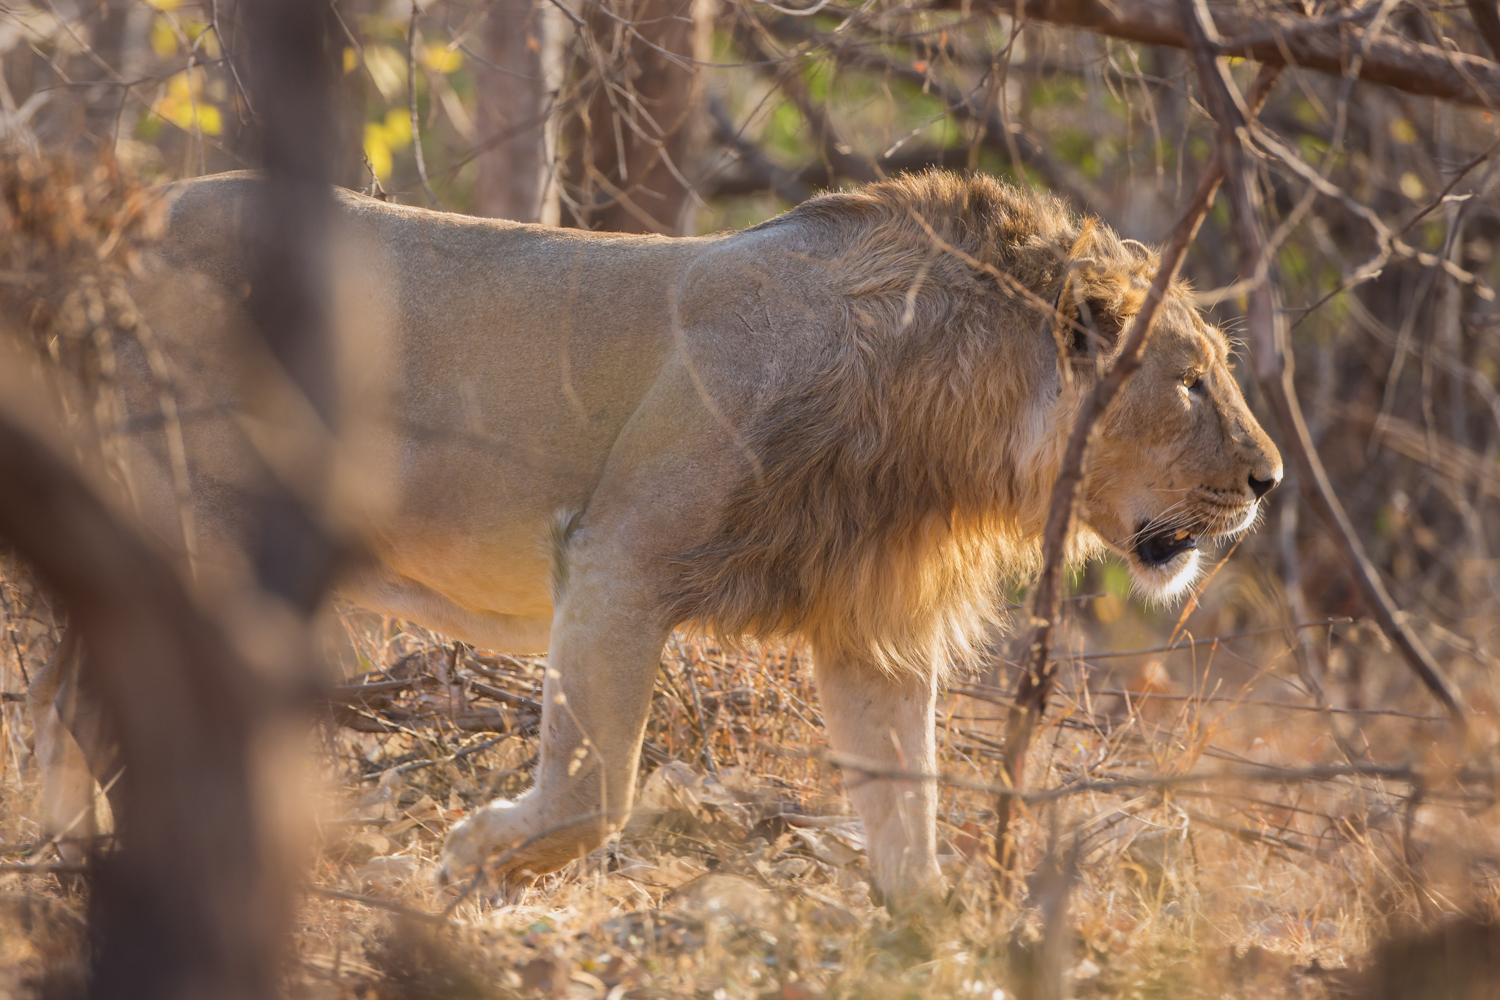 Asiatic Lion on the prowl. Big cats, threatened species, wildlife